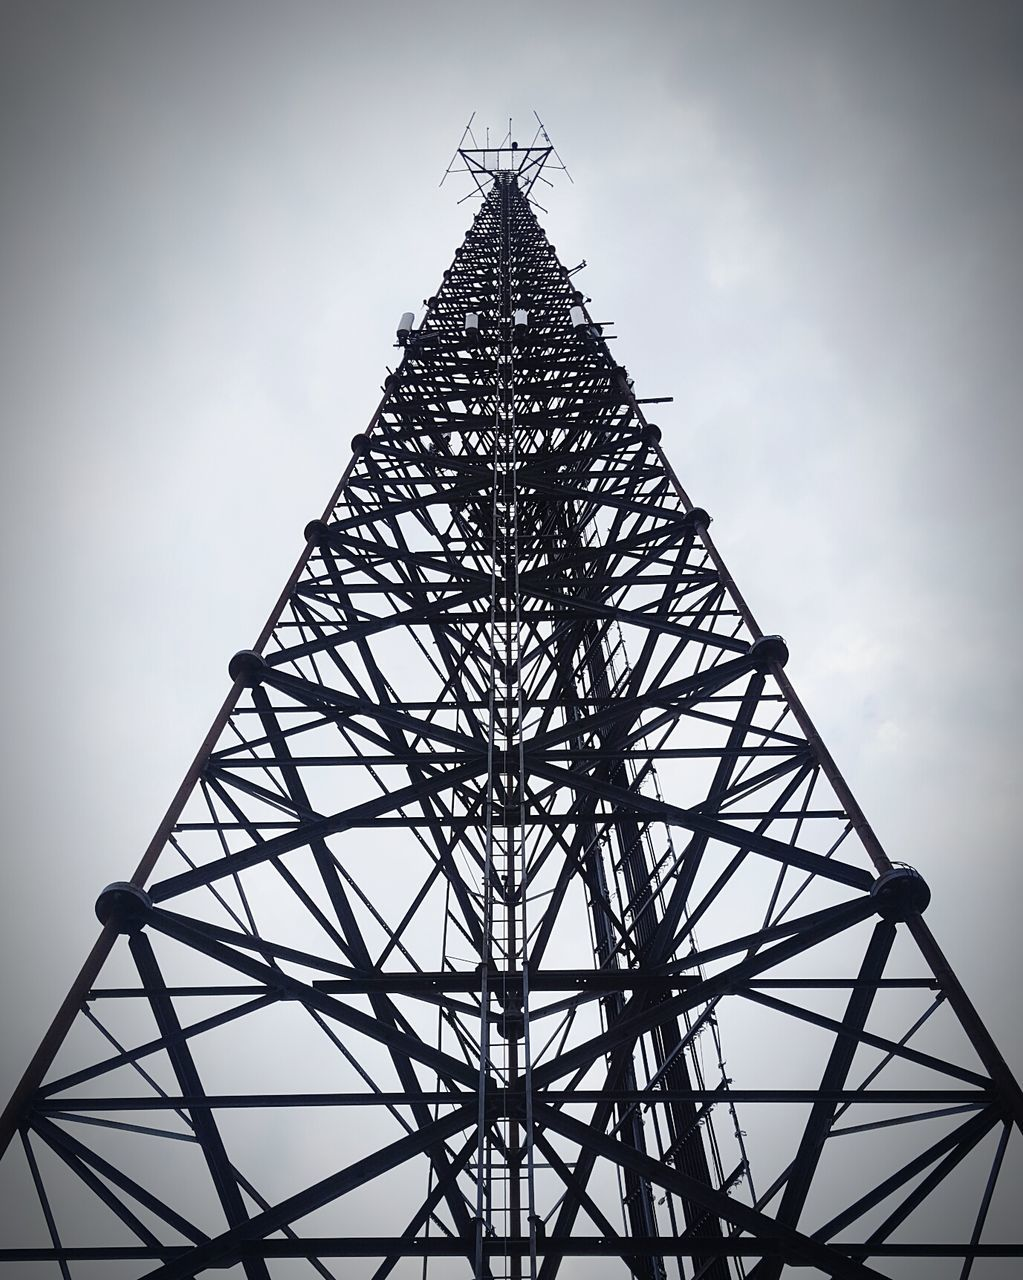 tower, low angle view, no people, sky, day, outdoors, architecture